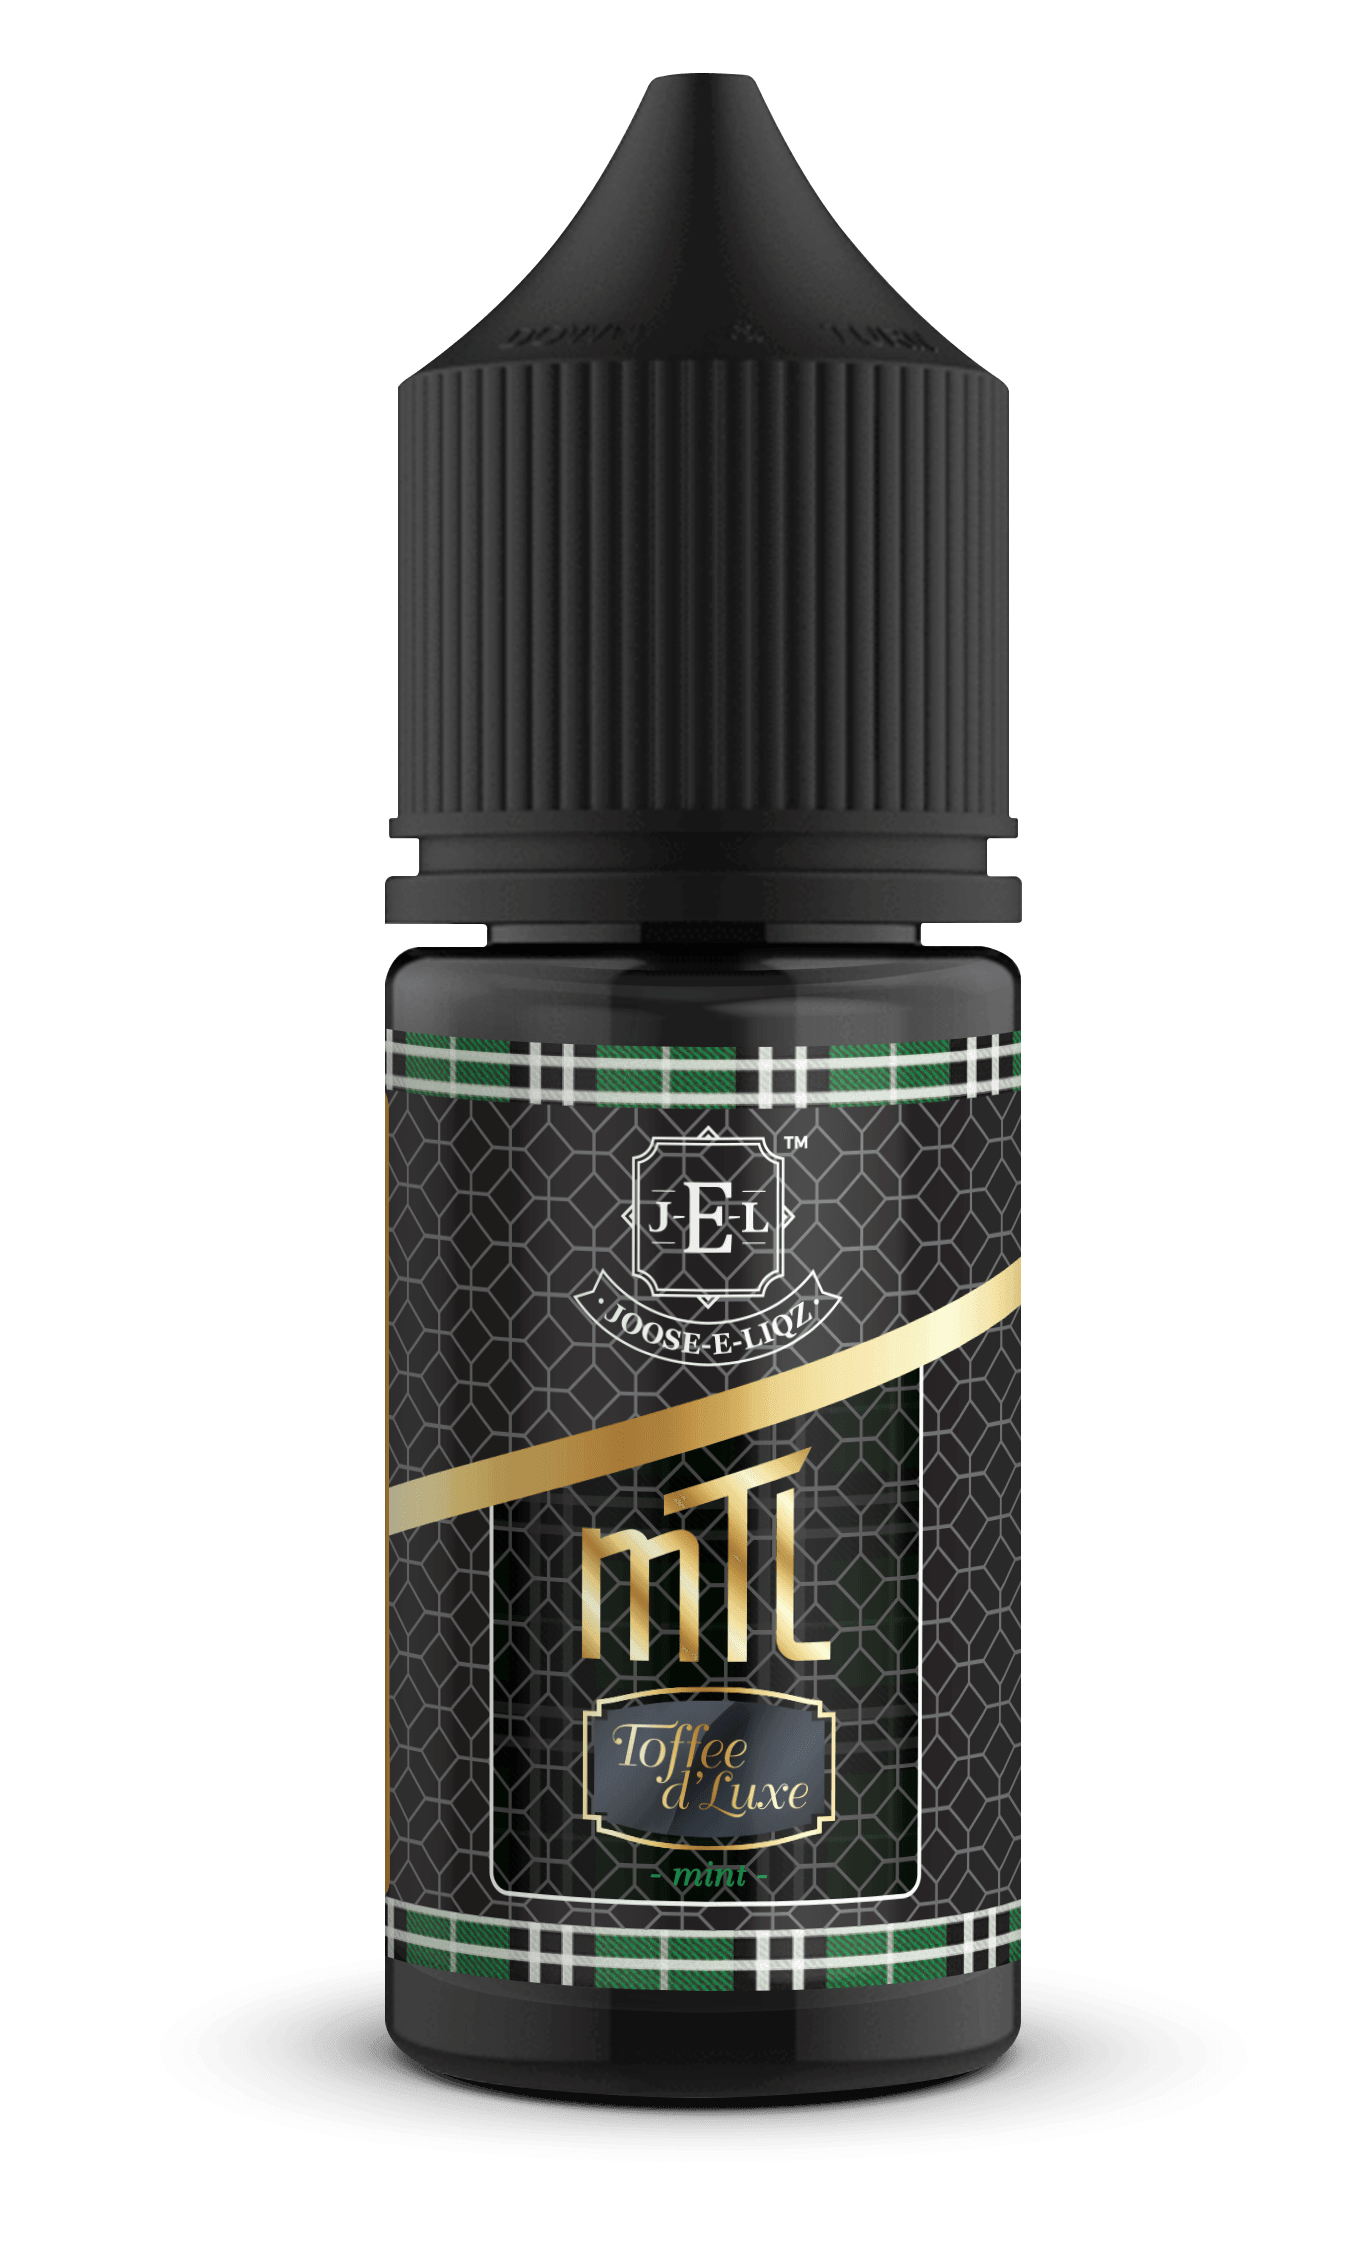 Joose-E-Liqz Toffee D'Luxe Mint MTL 30ml - Downtown Vapoury